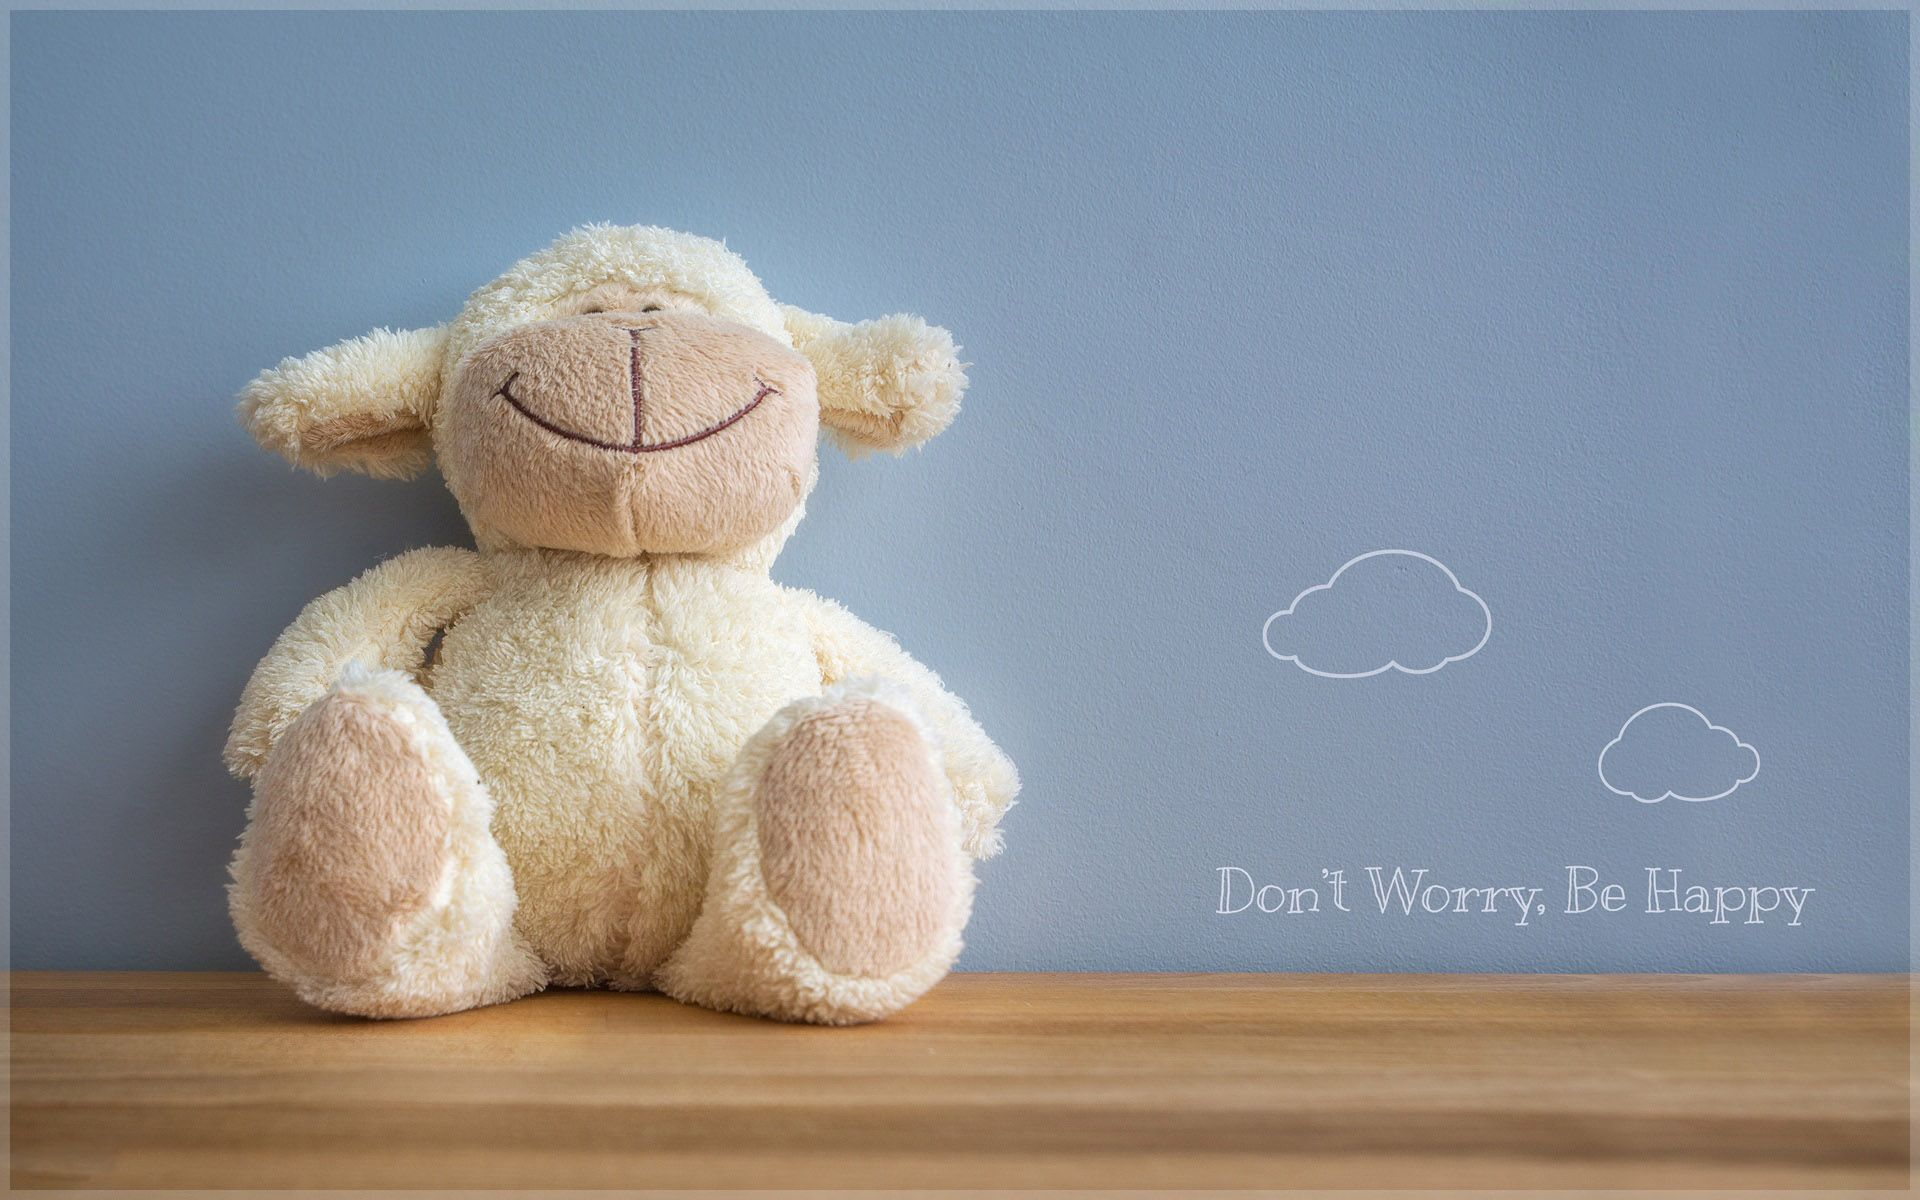 Don't Worry Be Happy Desktop Background Wallpapers